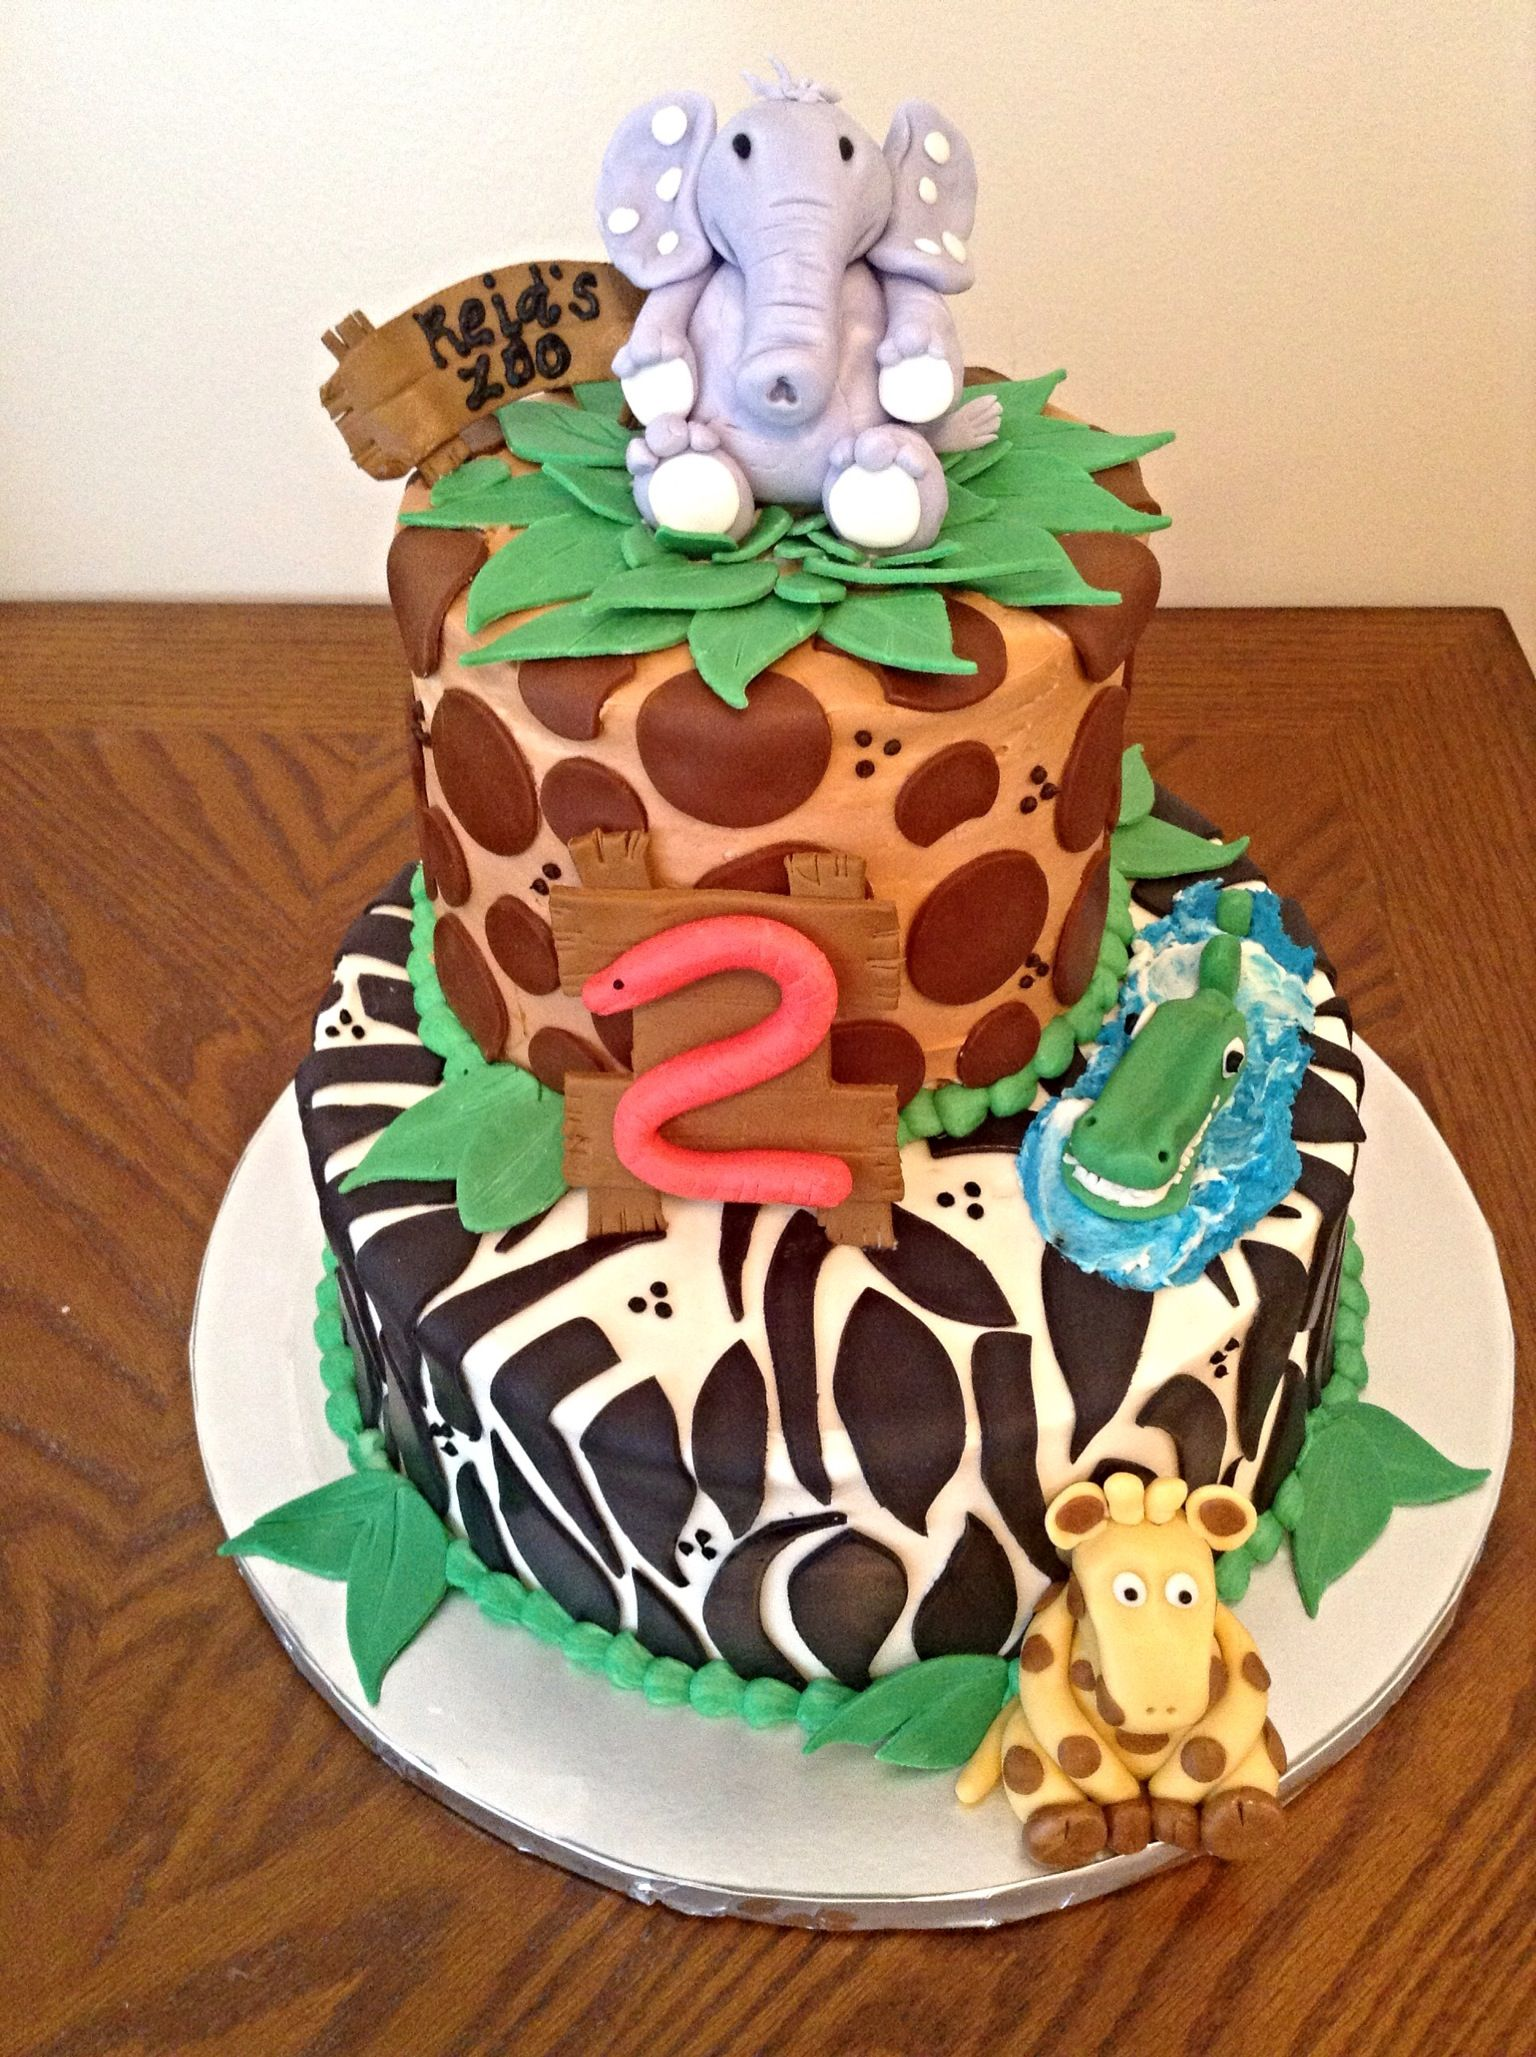 Cake Decoration Zoo : Zoo themed birthday cake :) girls birthday party themes ...